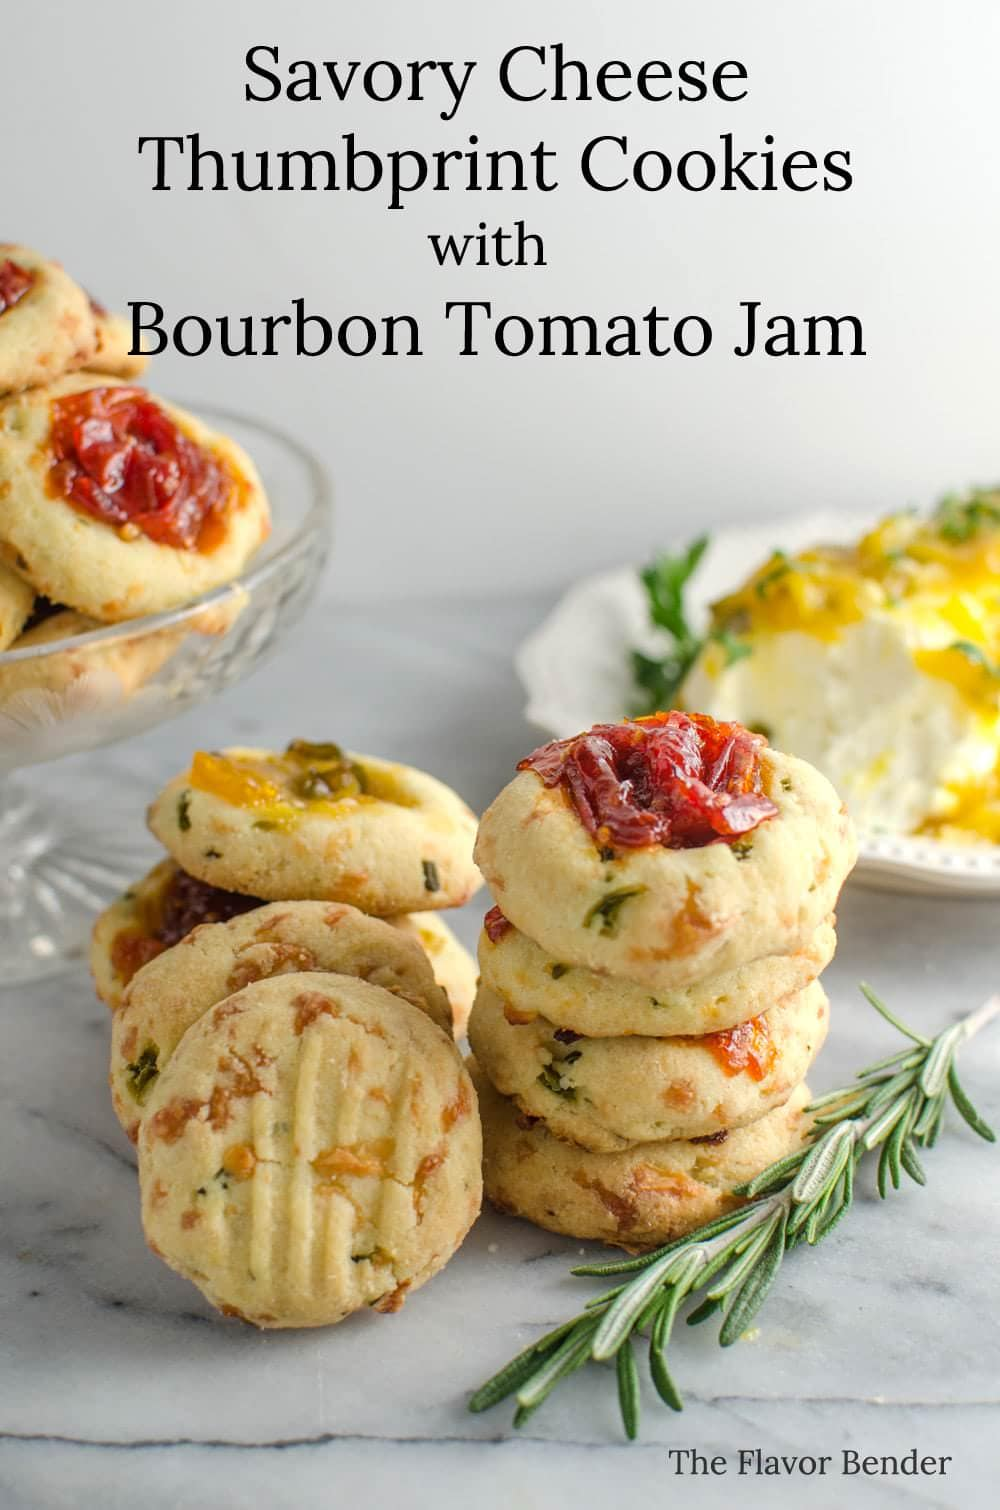 Savory Cheese Thumbprint Cookies with Bourbon Tomato Jam - These savory cookies are the NEXT BEST THING! Buttery, herby cookies with delicious cheddar cheese, and an amazing tomato jam! Comes together easily and its PERFECT as an appetizer, party food, or as a snack!